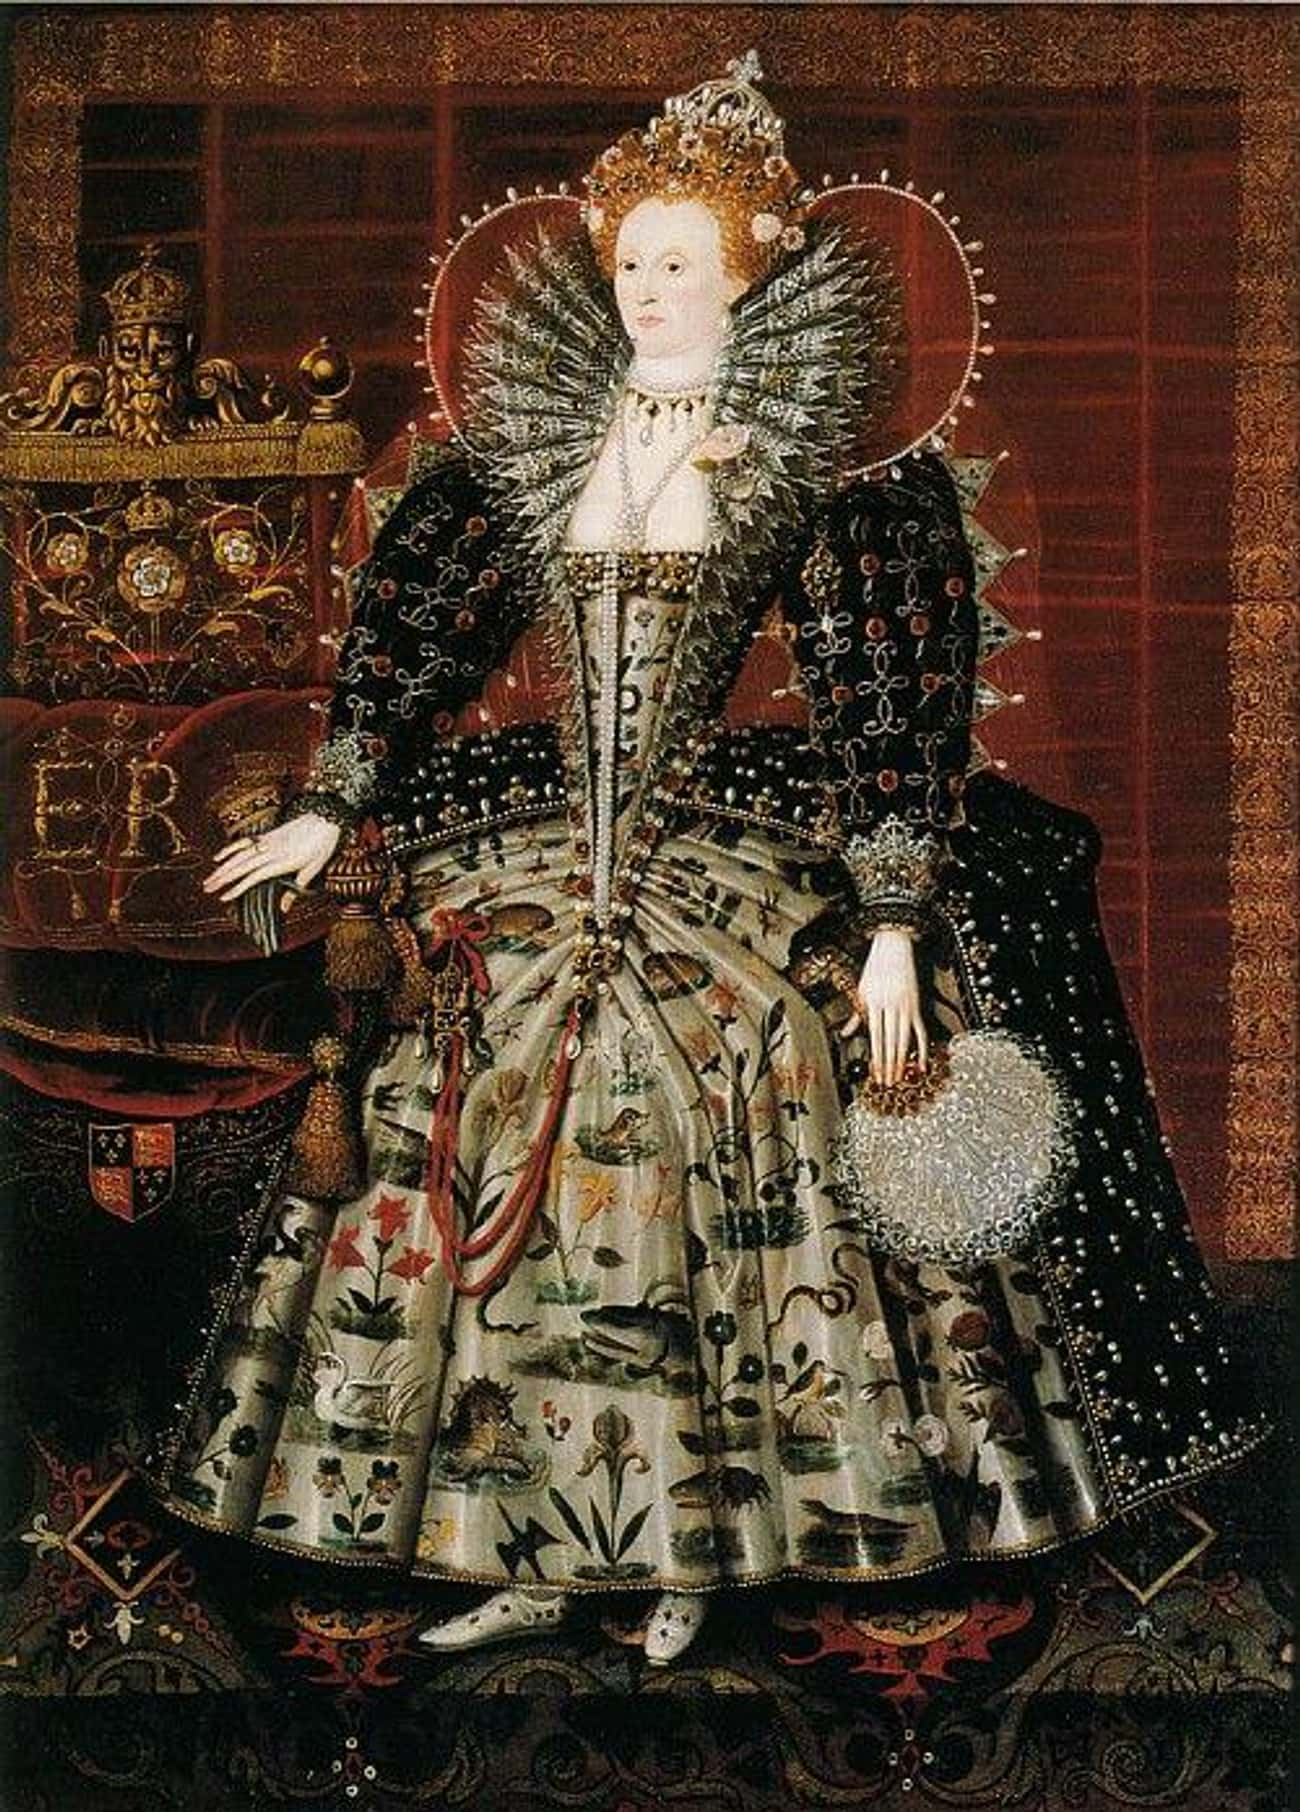 She Was Francis Bacon's Mother is listed (or ranked) 4 on the list 7 Thought-Provoking Historical Conspiracy Theories About Queen Elizabeth I